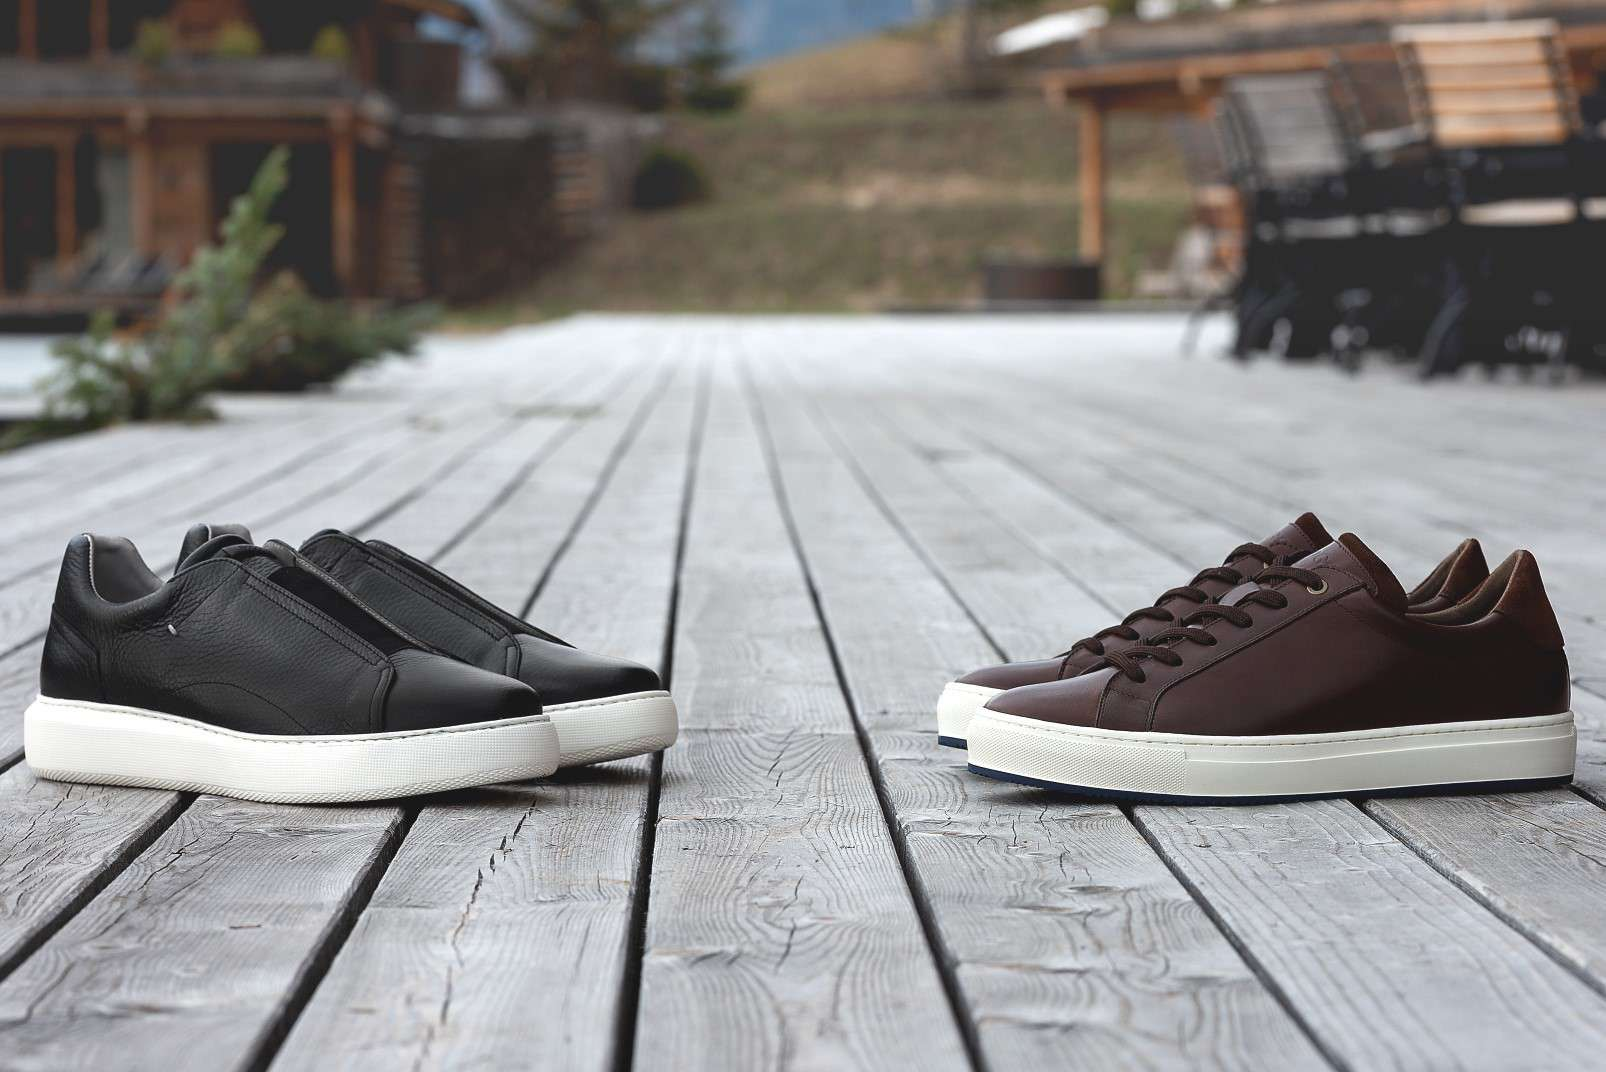 Boggi Milano sneakers in smooth leather